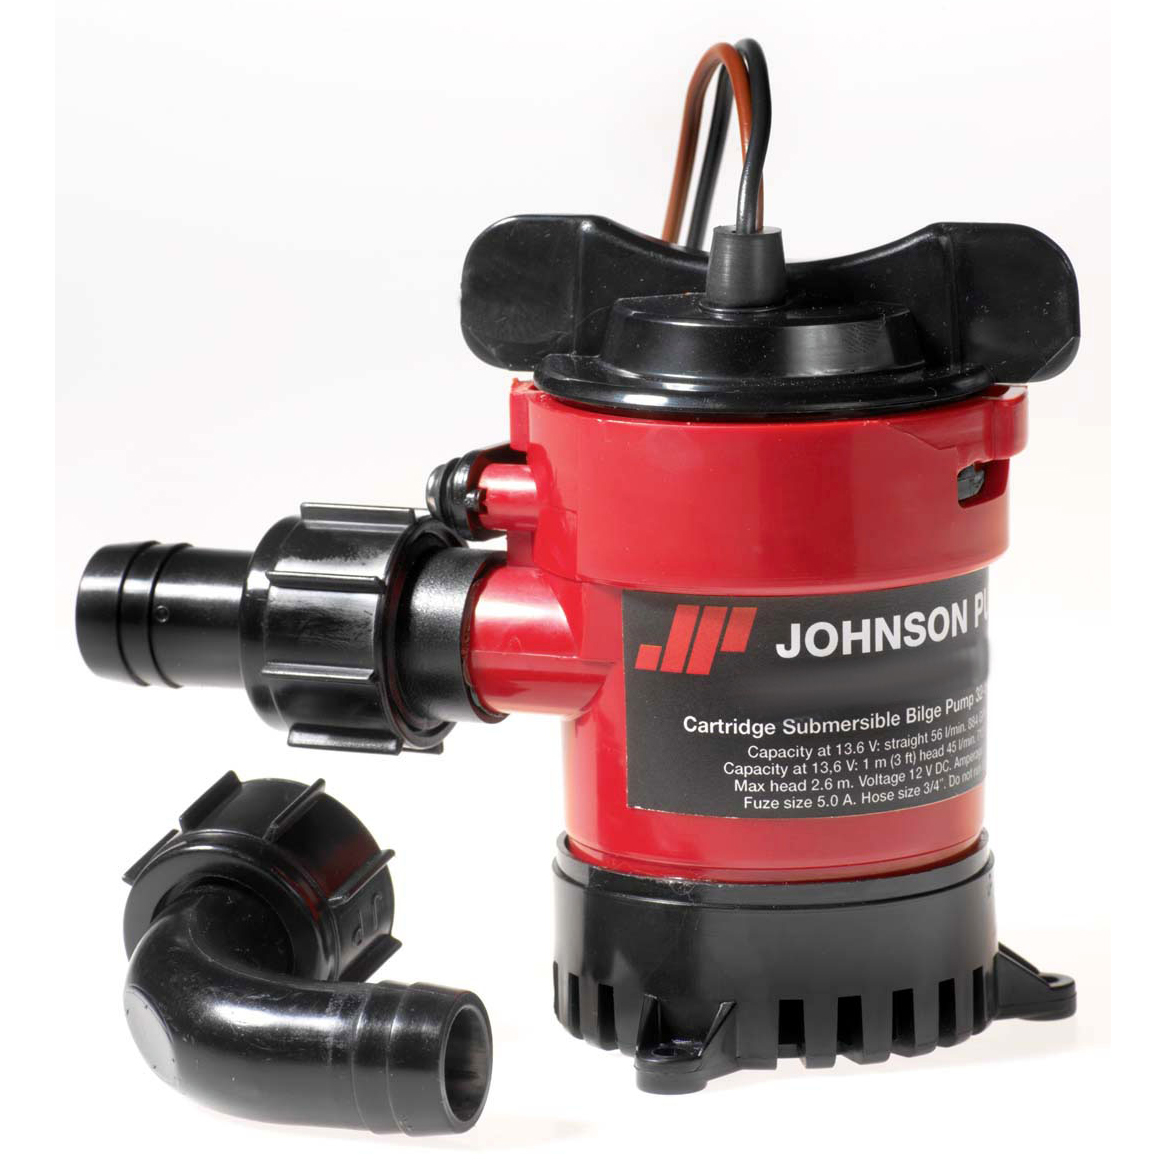 Johnson Pump Cartridge Bilge Pump, 1000 GPH photo